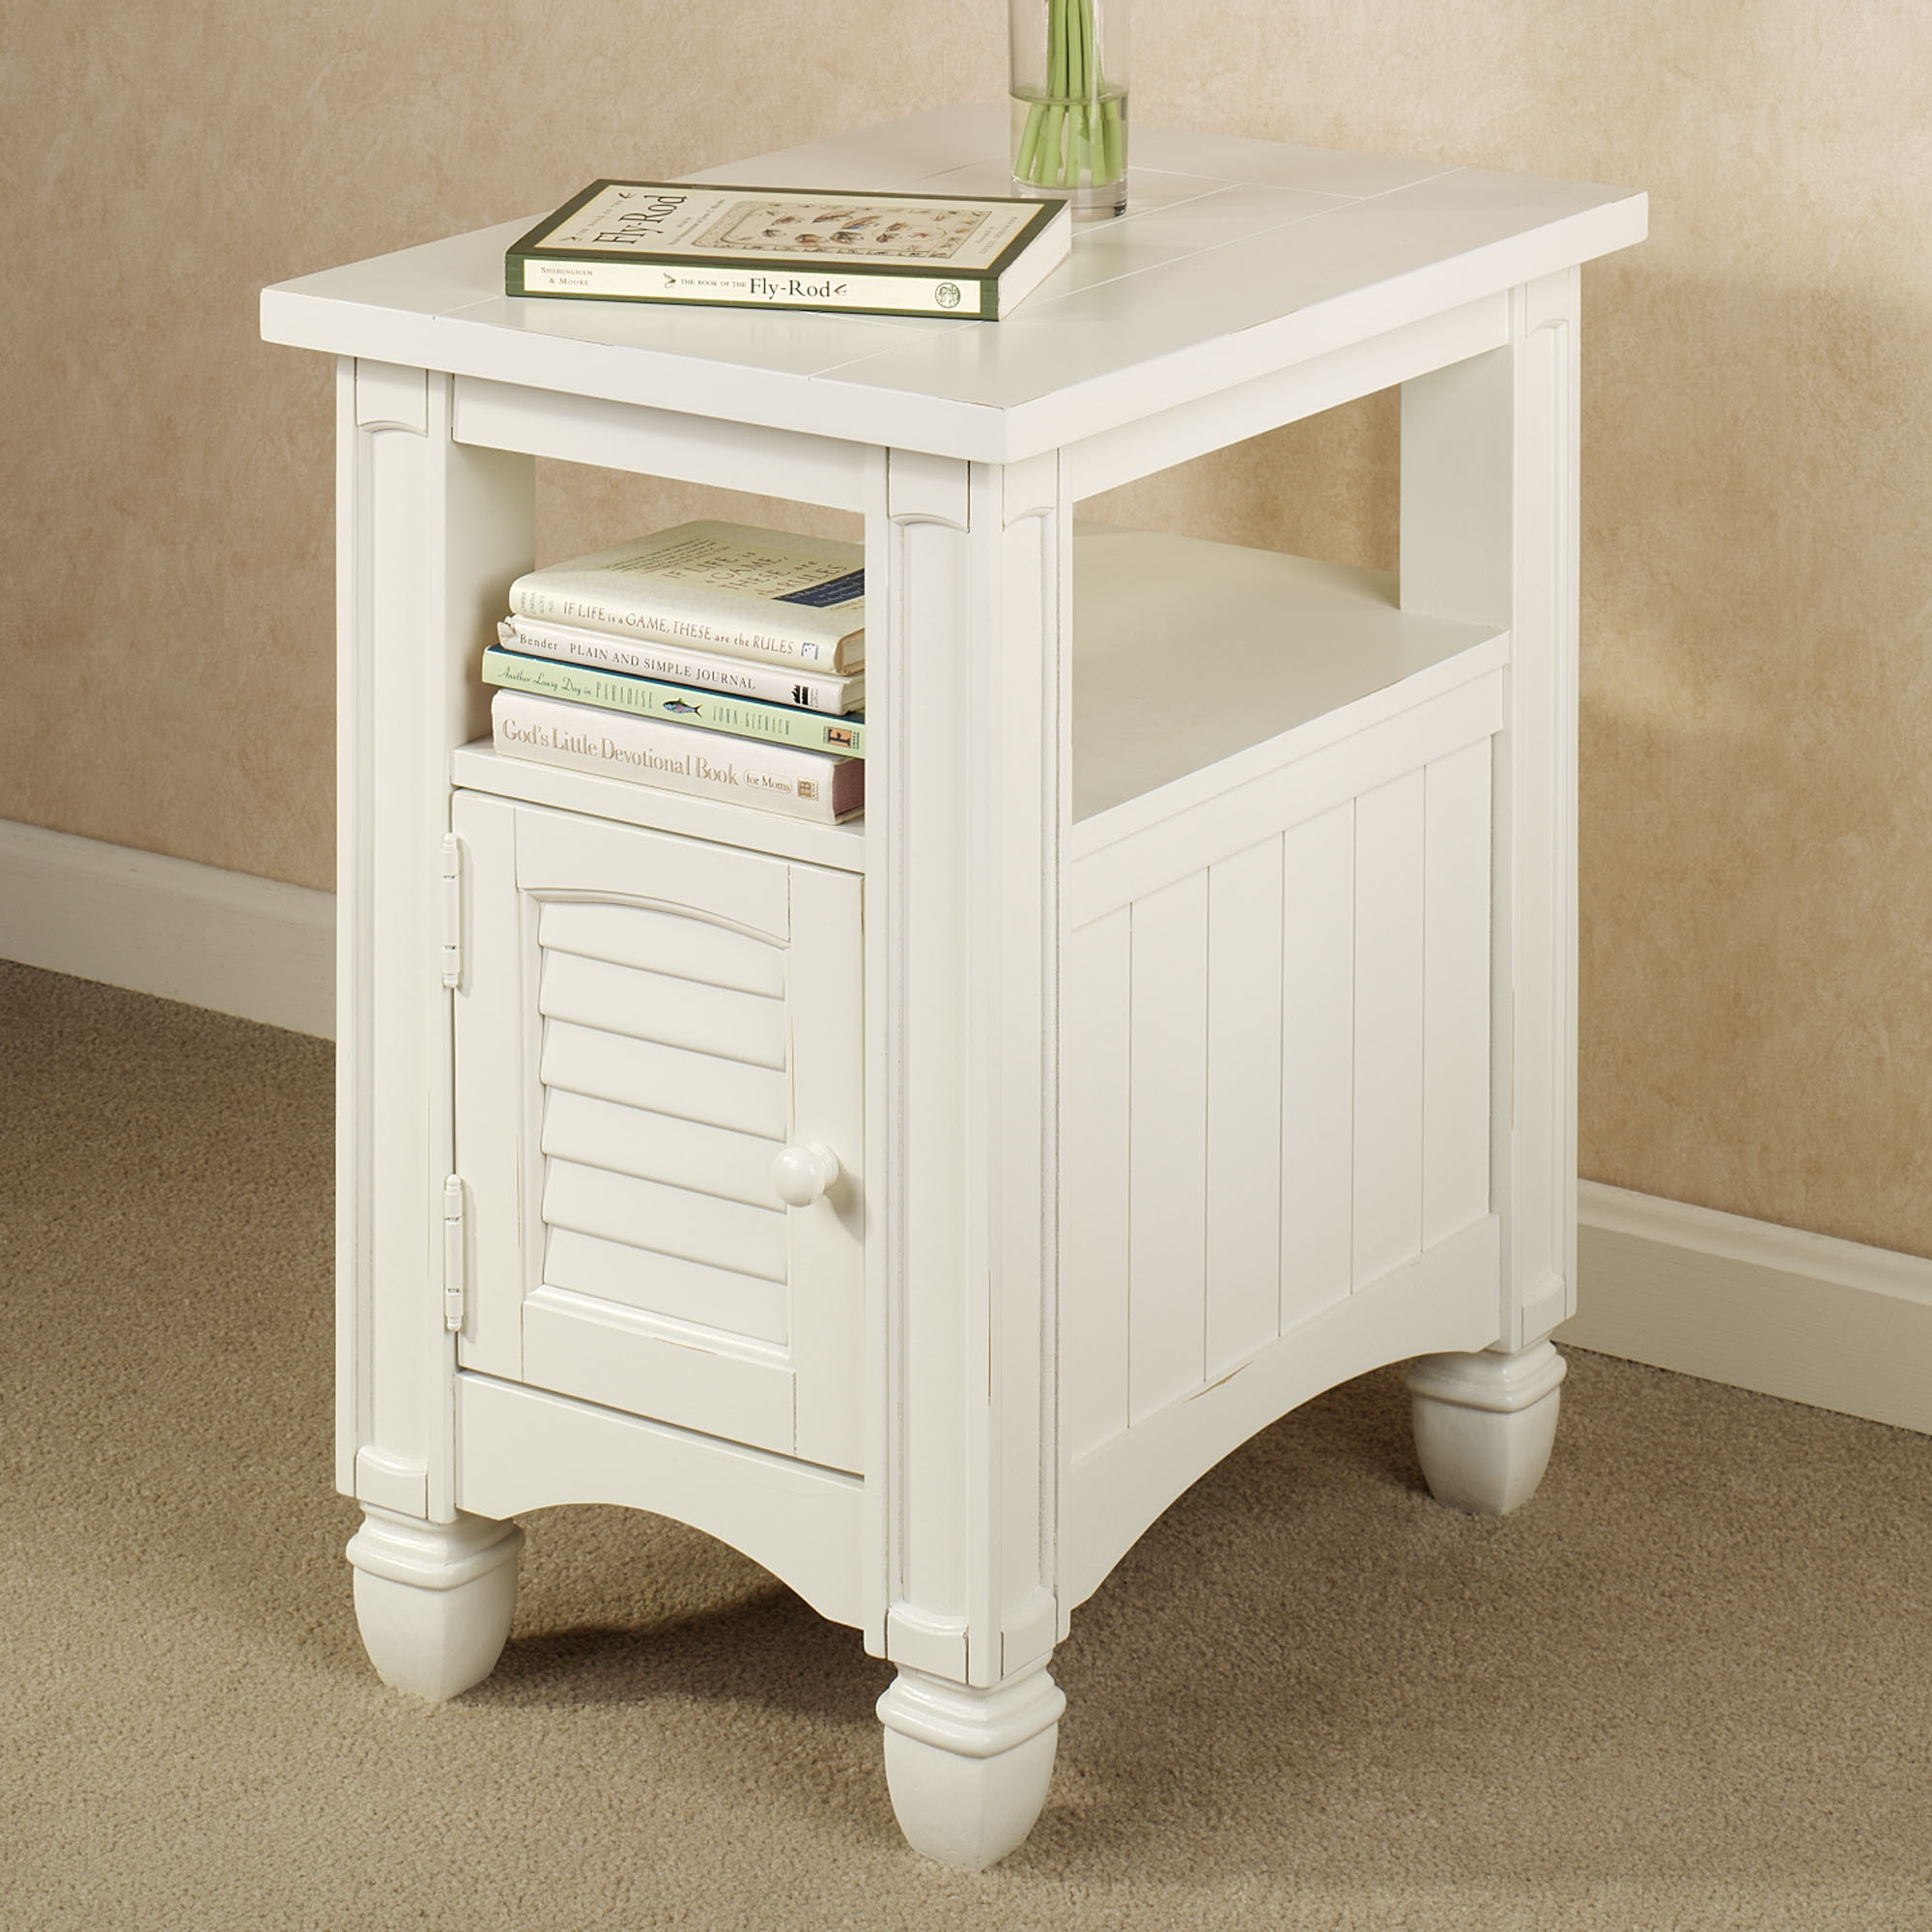 fresh white end table with drawer margate threshold target storage mclaughlin dark wood top basket magazine rack charging station glass door accent ashley furniture entertainment